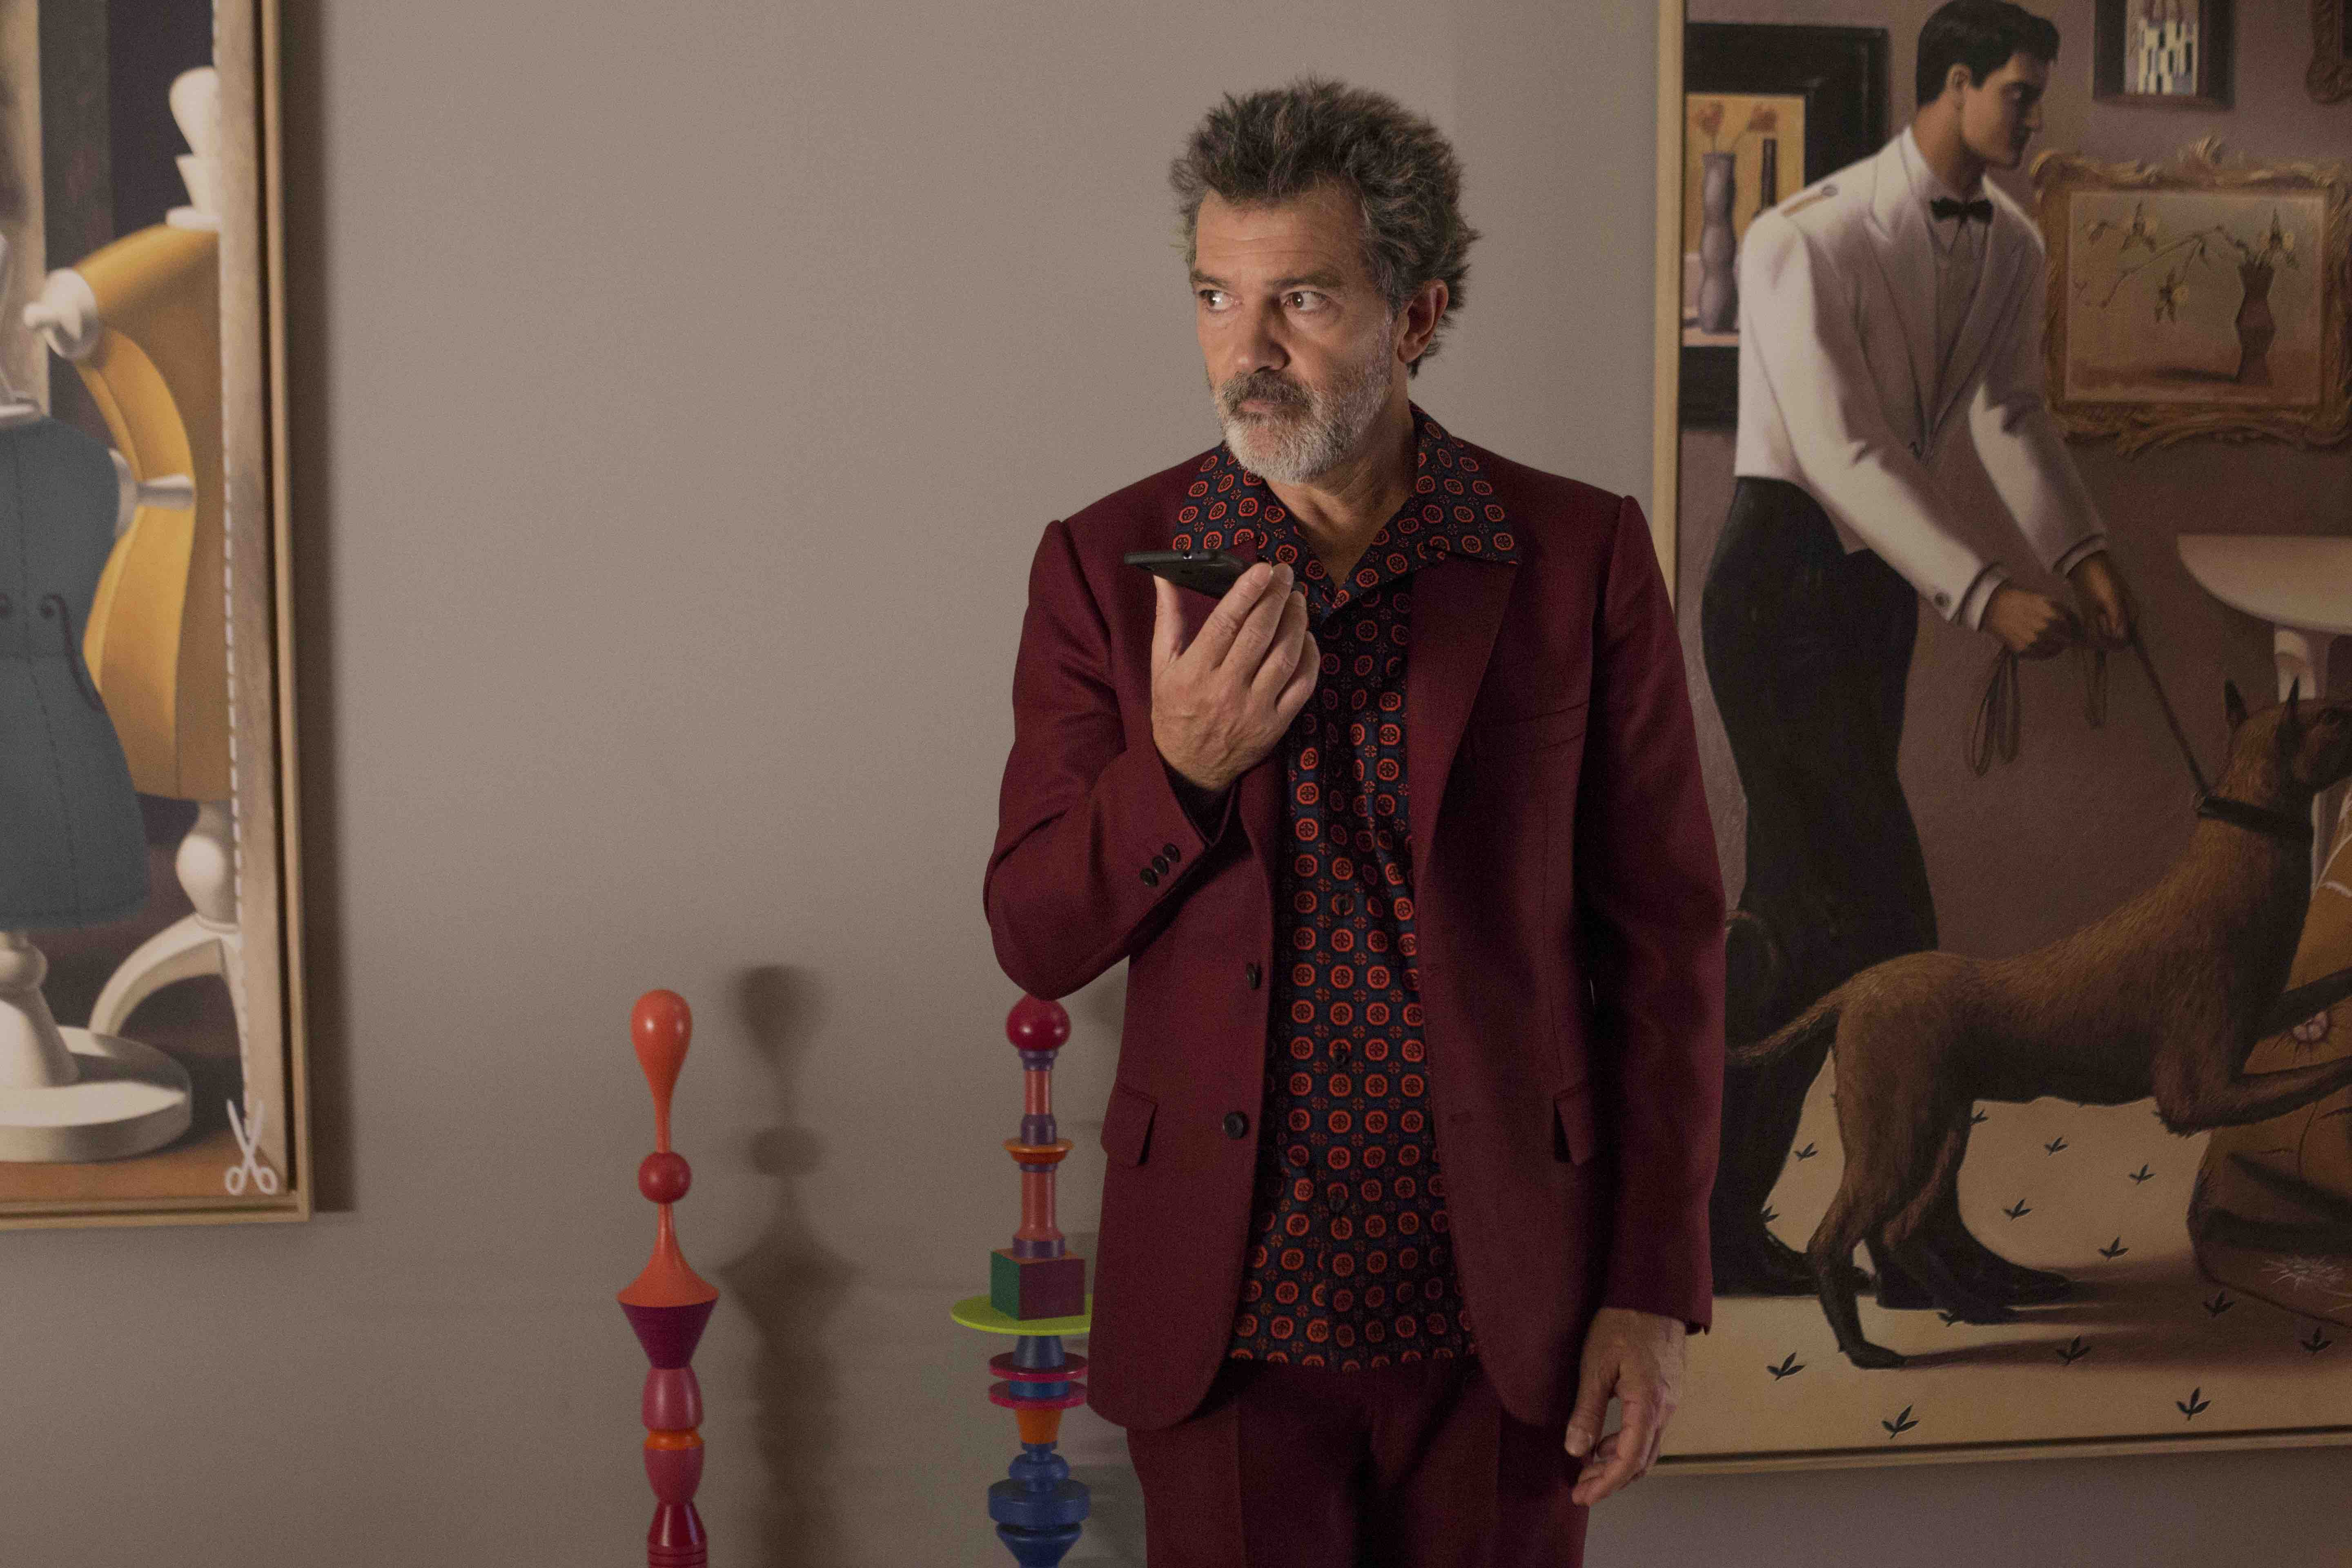 How Latin American Music Plays an Essential Role in Pedro Almodóvar's Movies